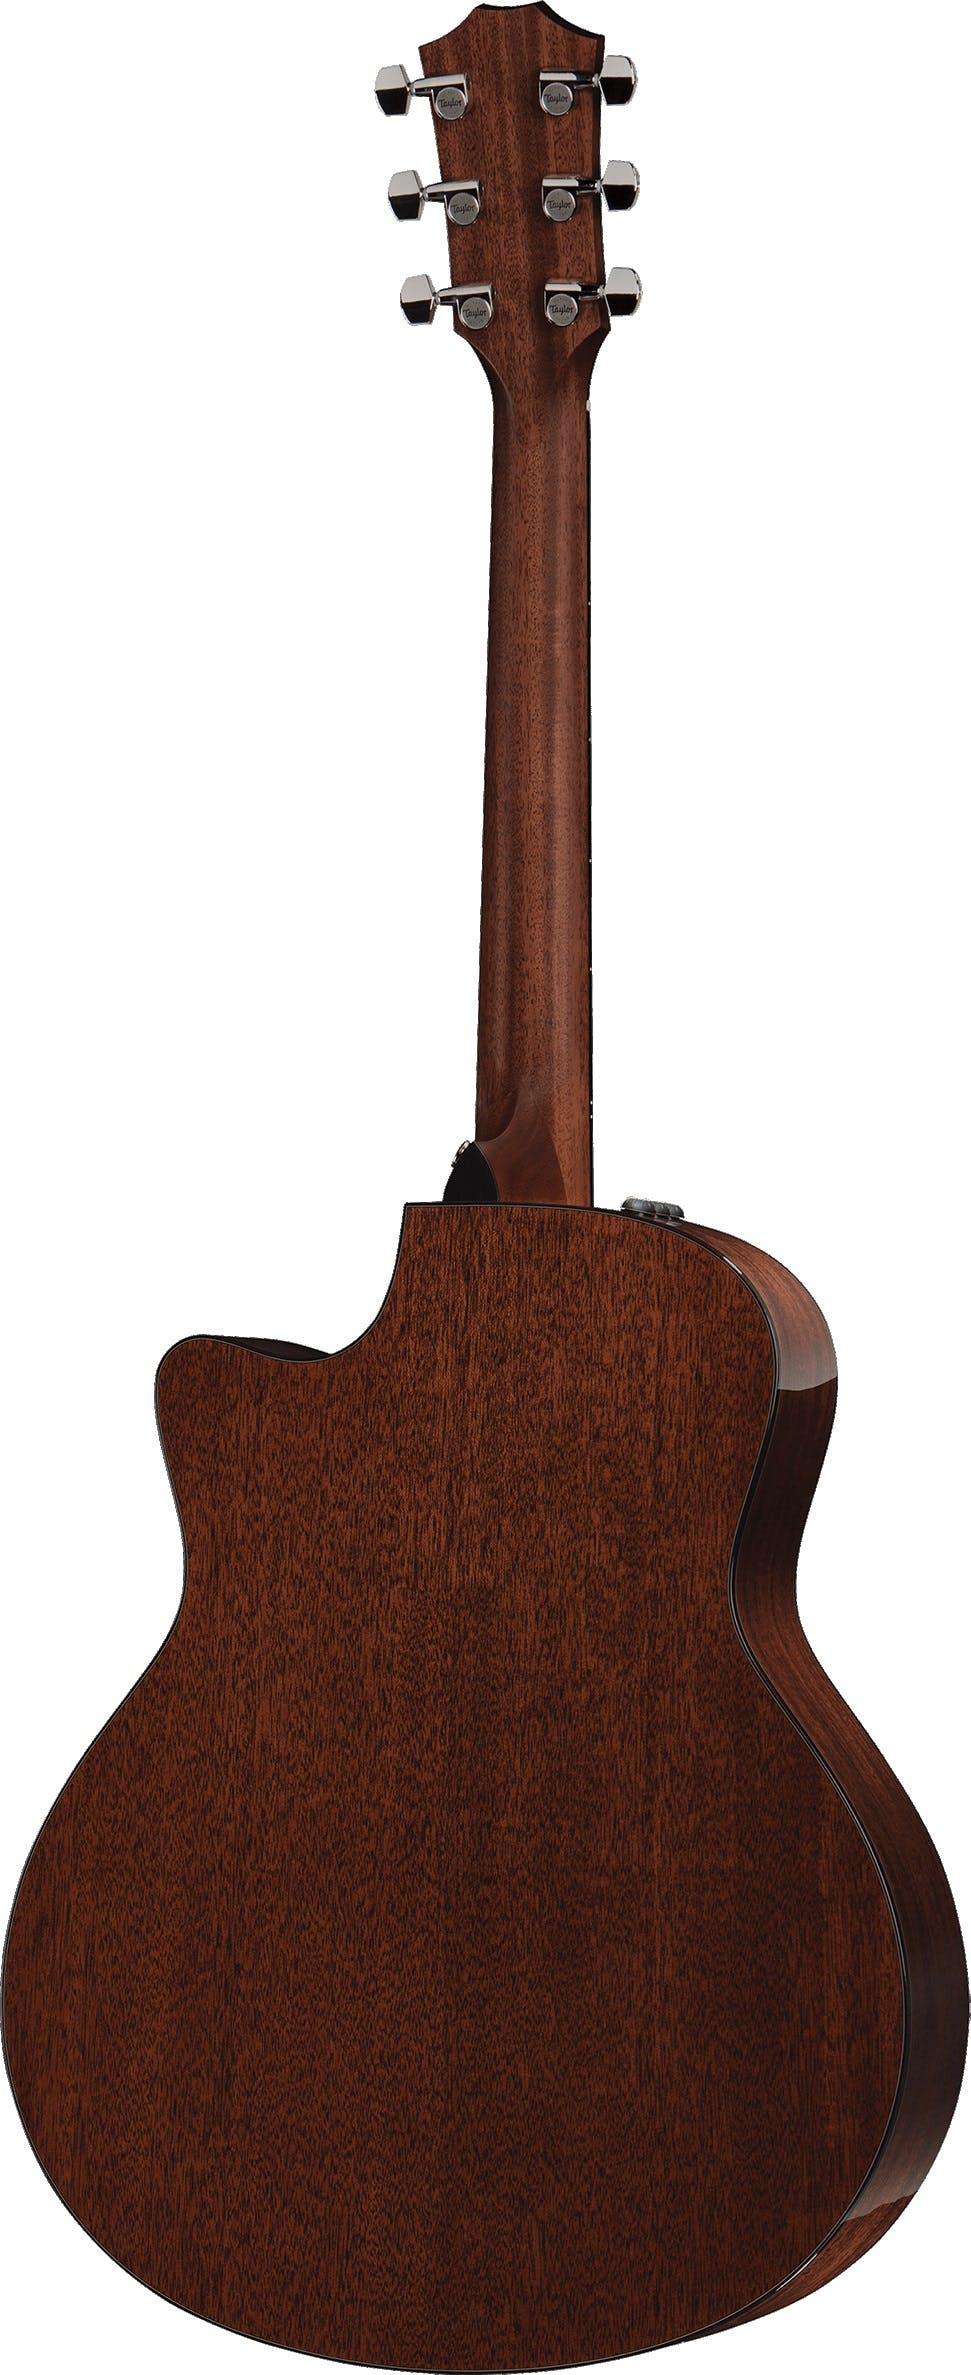 Hot Sale Taylor 500 514ce Acoustic/electric Guitar W/hardshell Case Musical Instruments & Gear Acoustic Electric Guitars